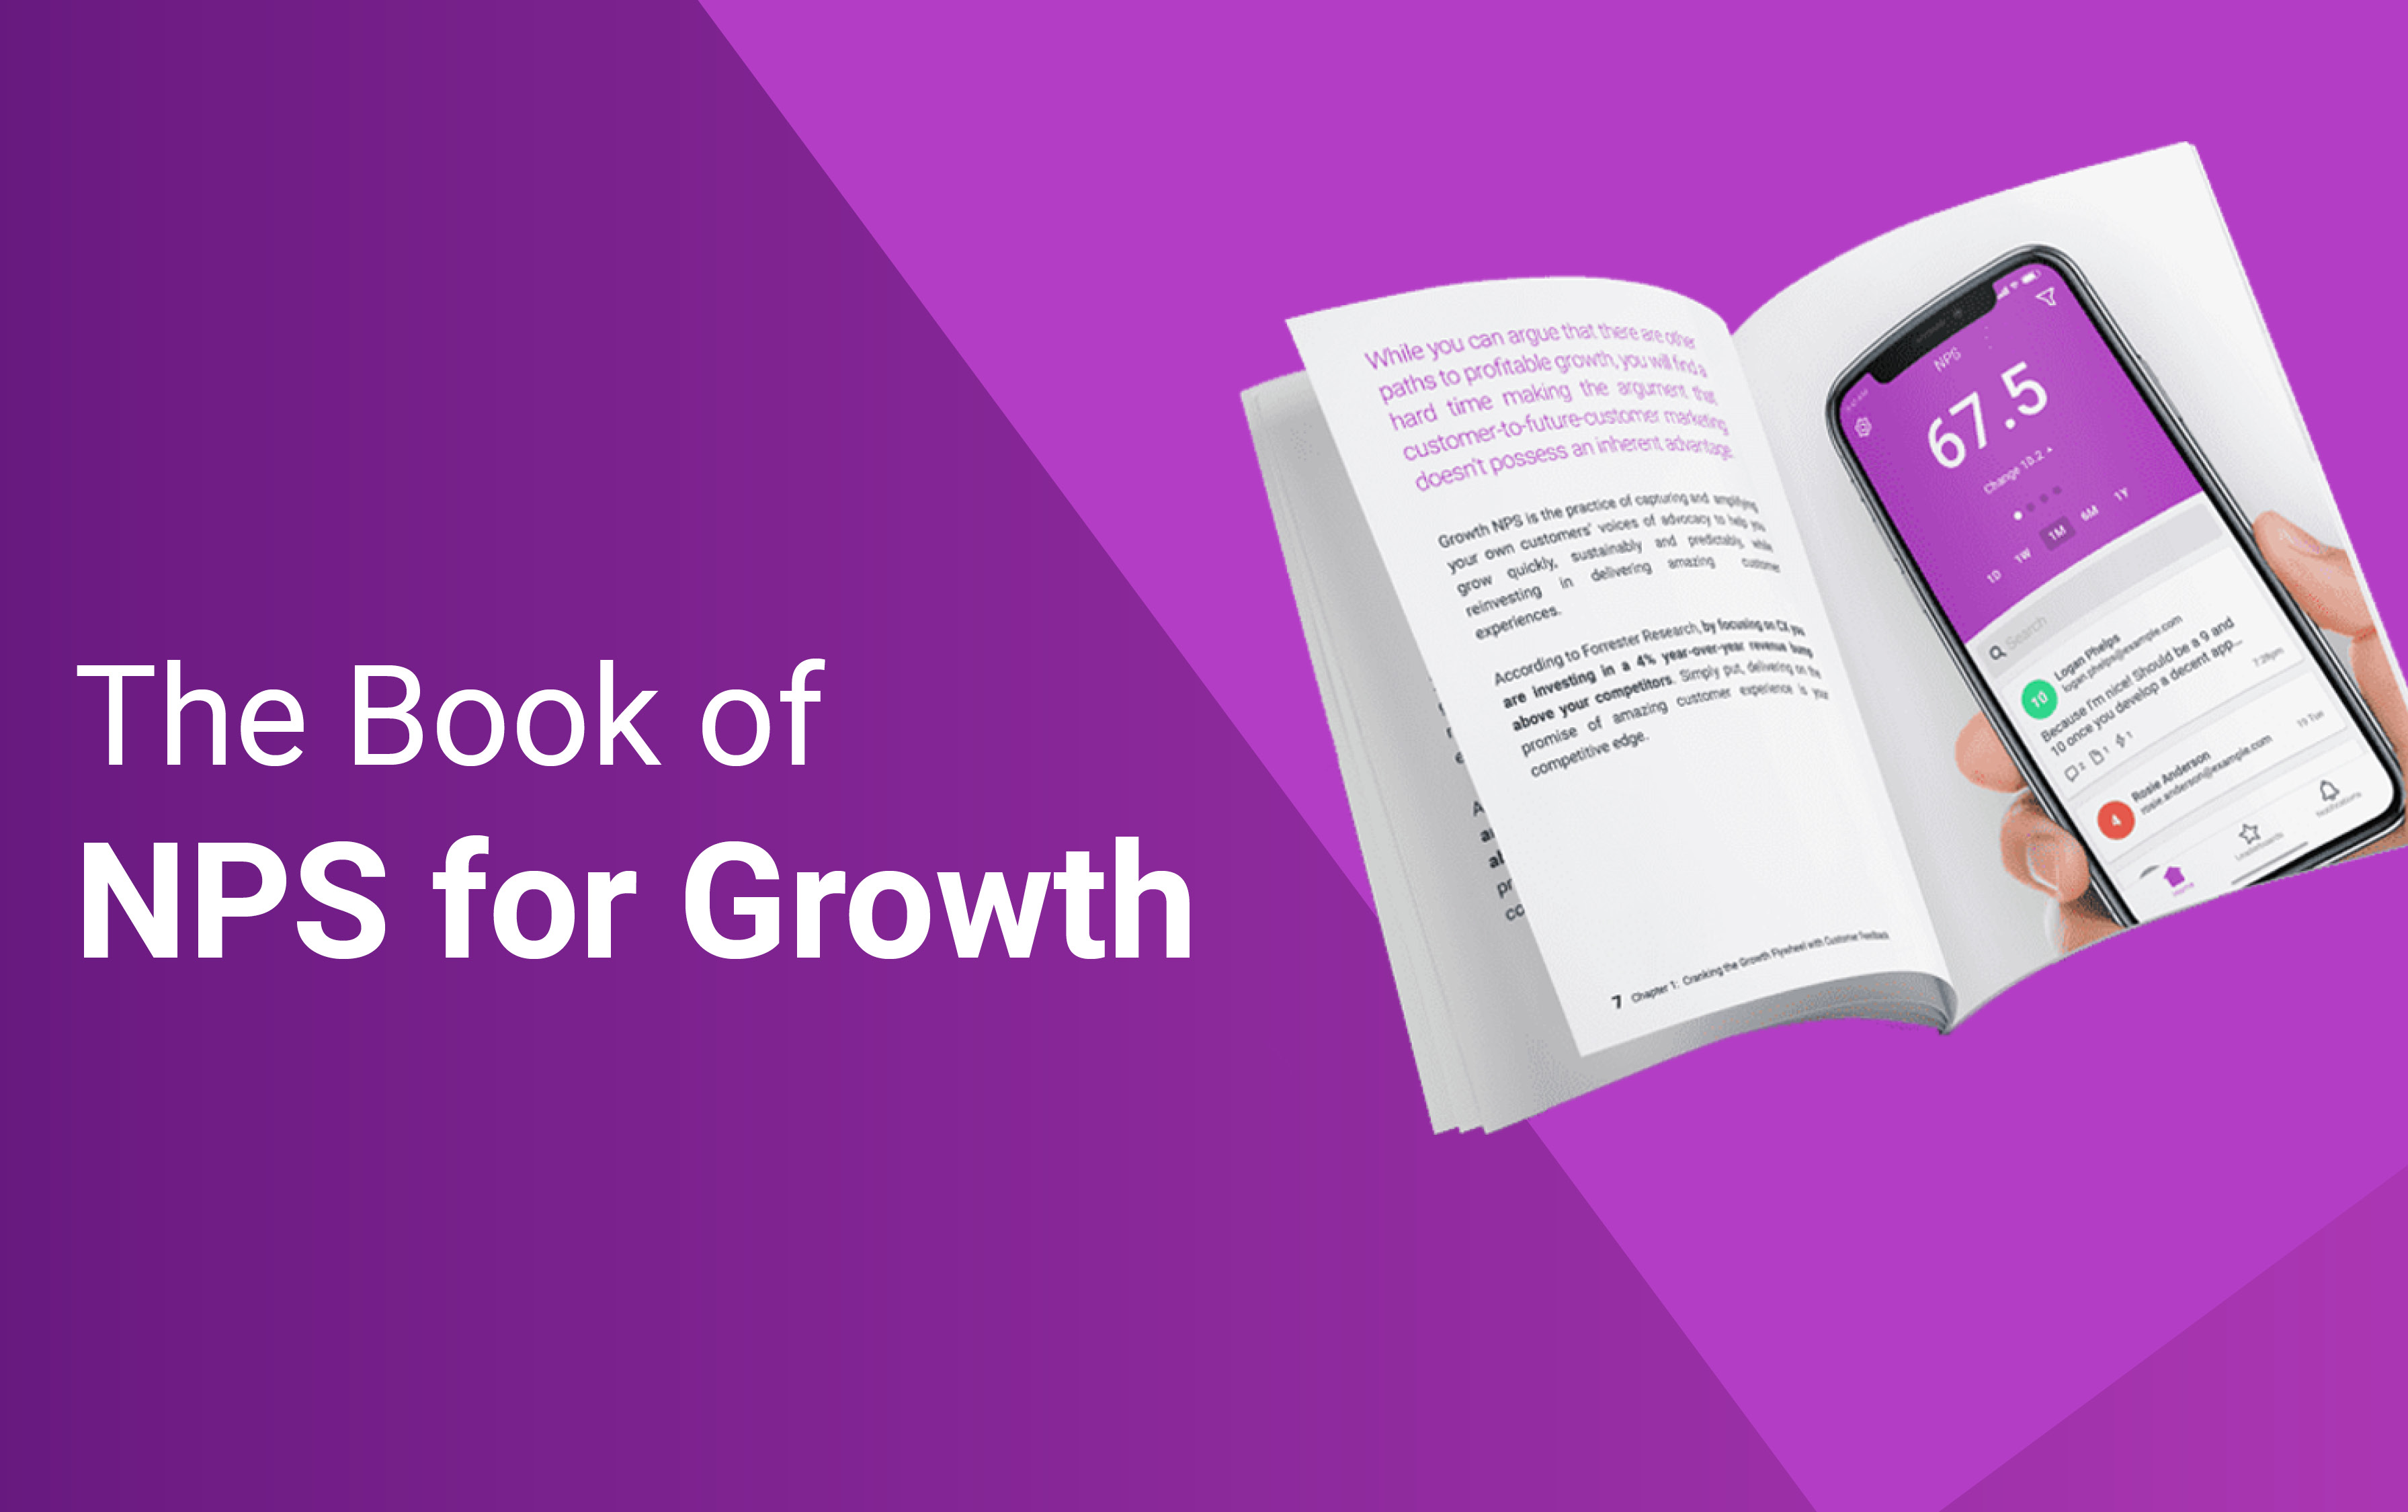 In this eBook, we turn the whole growth hacking model on its head, to prepare for a new era of customer-obsessed marketing.